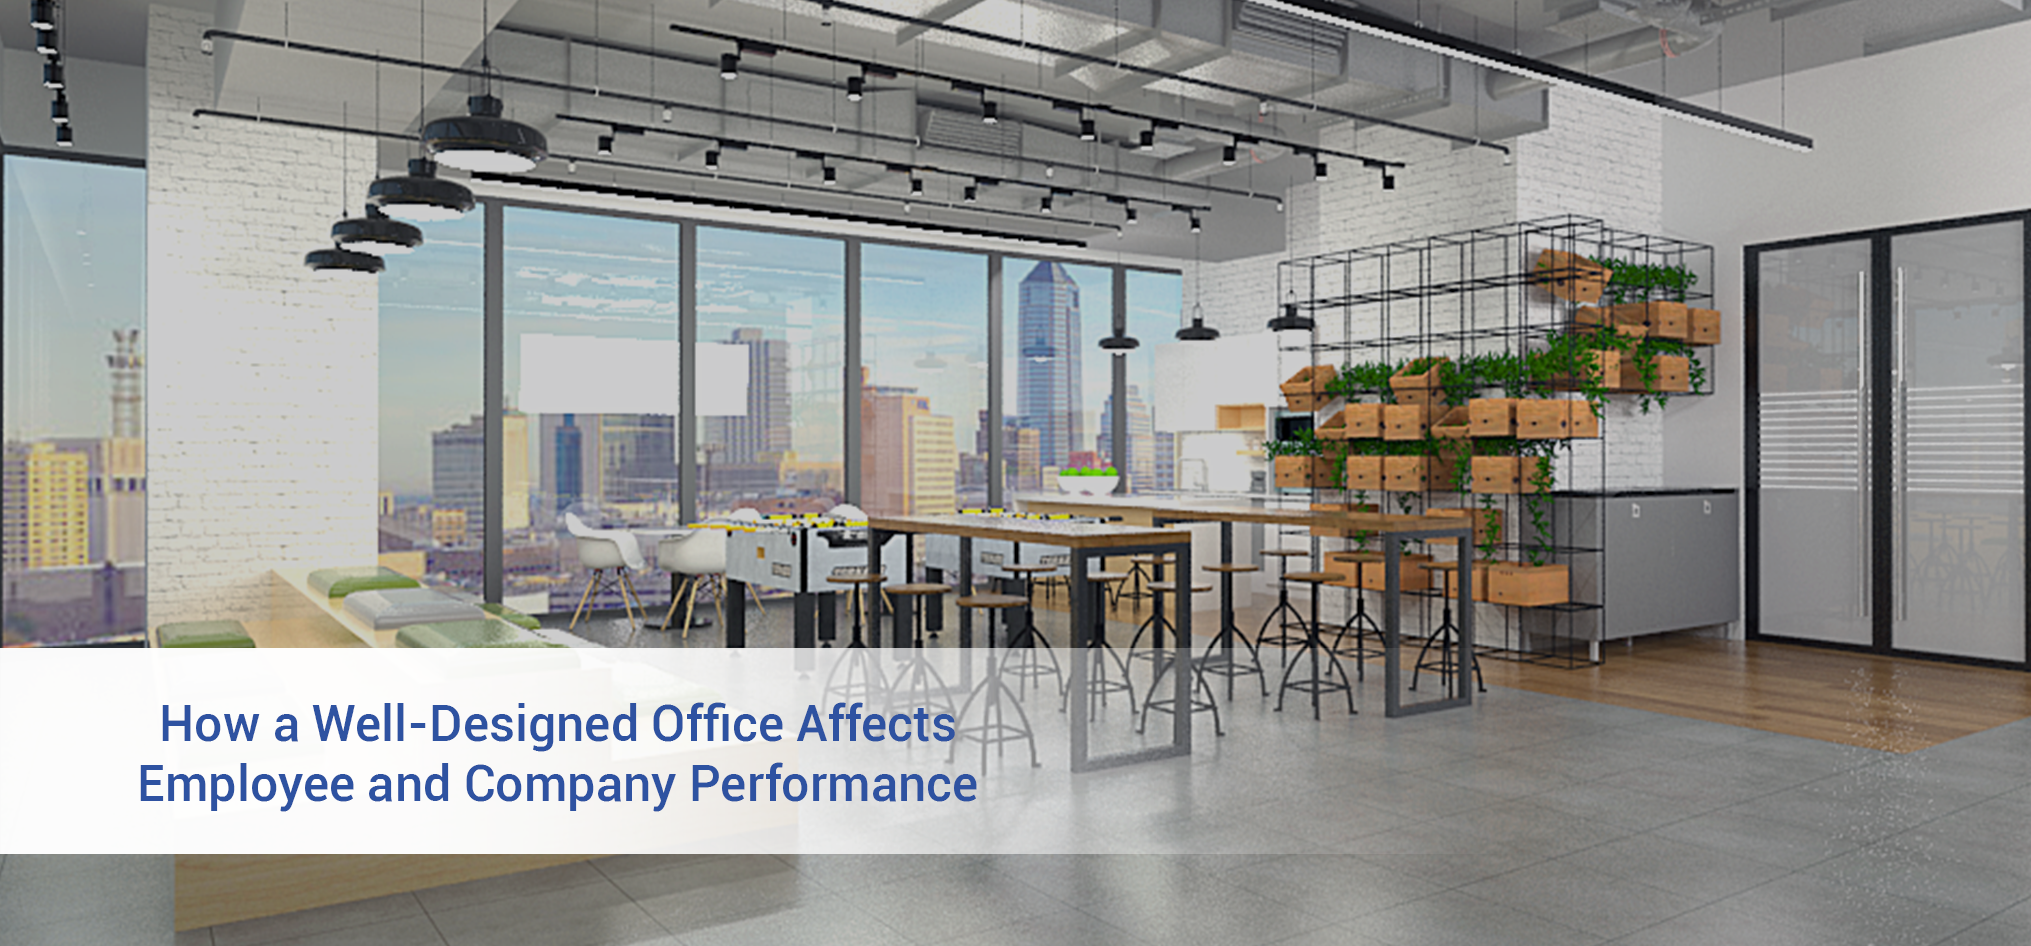 How a Well-Designed Office Affects Employee and Company Performance by Figari